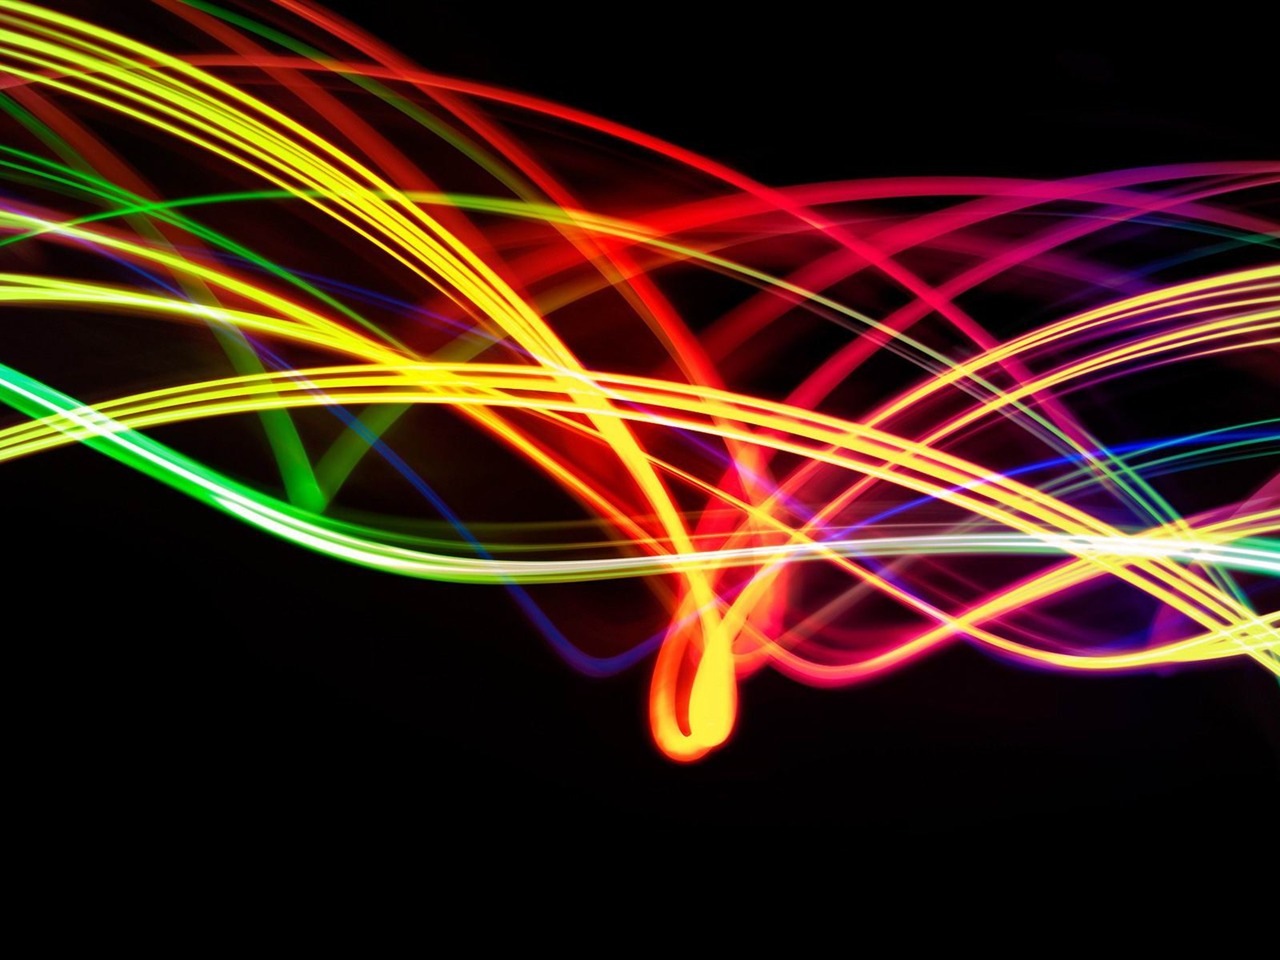 abstract colorful design light - photo #28